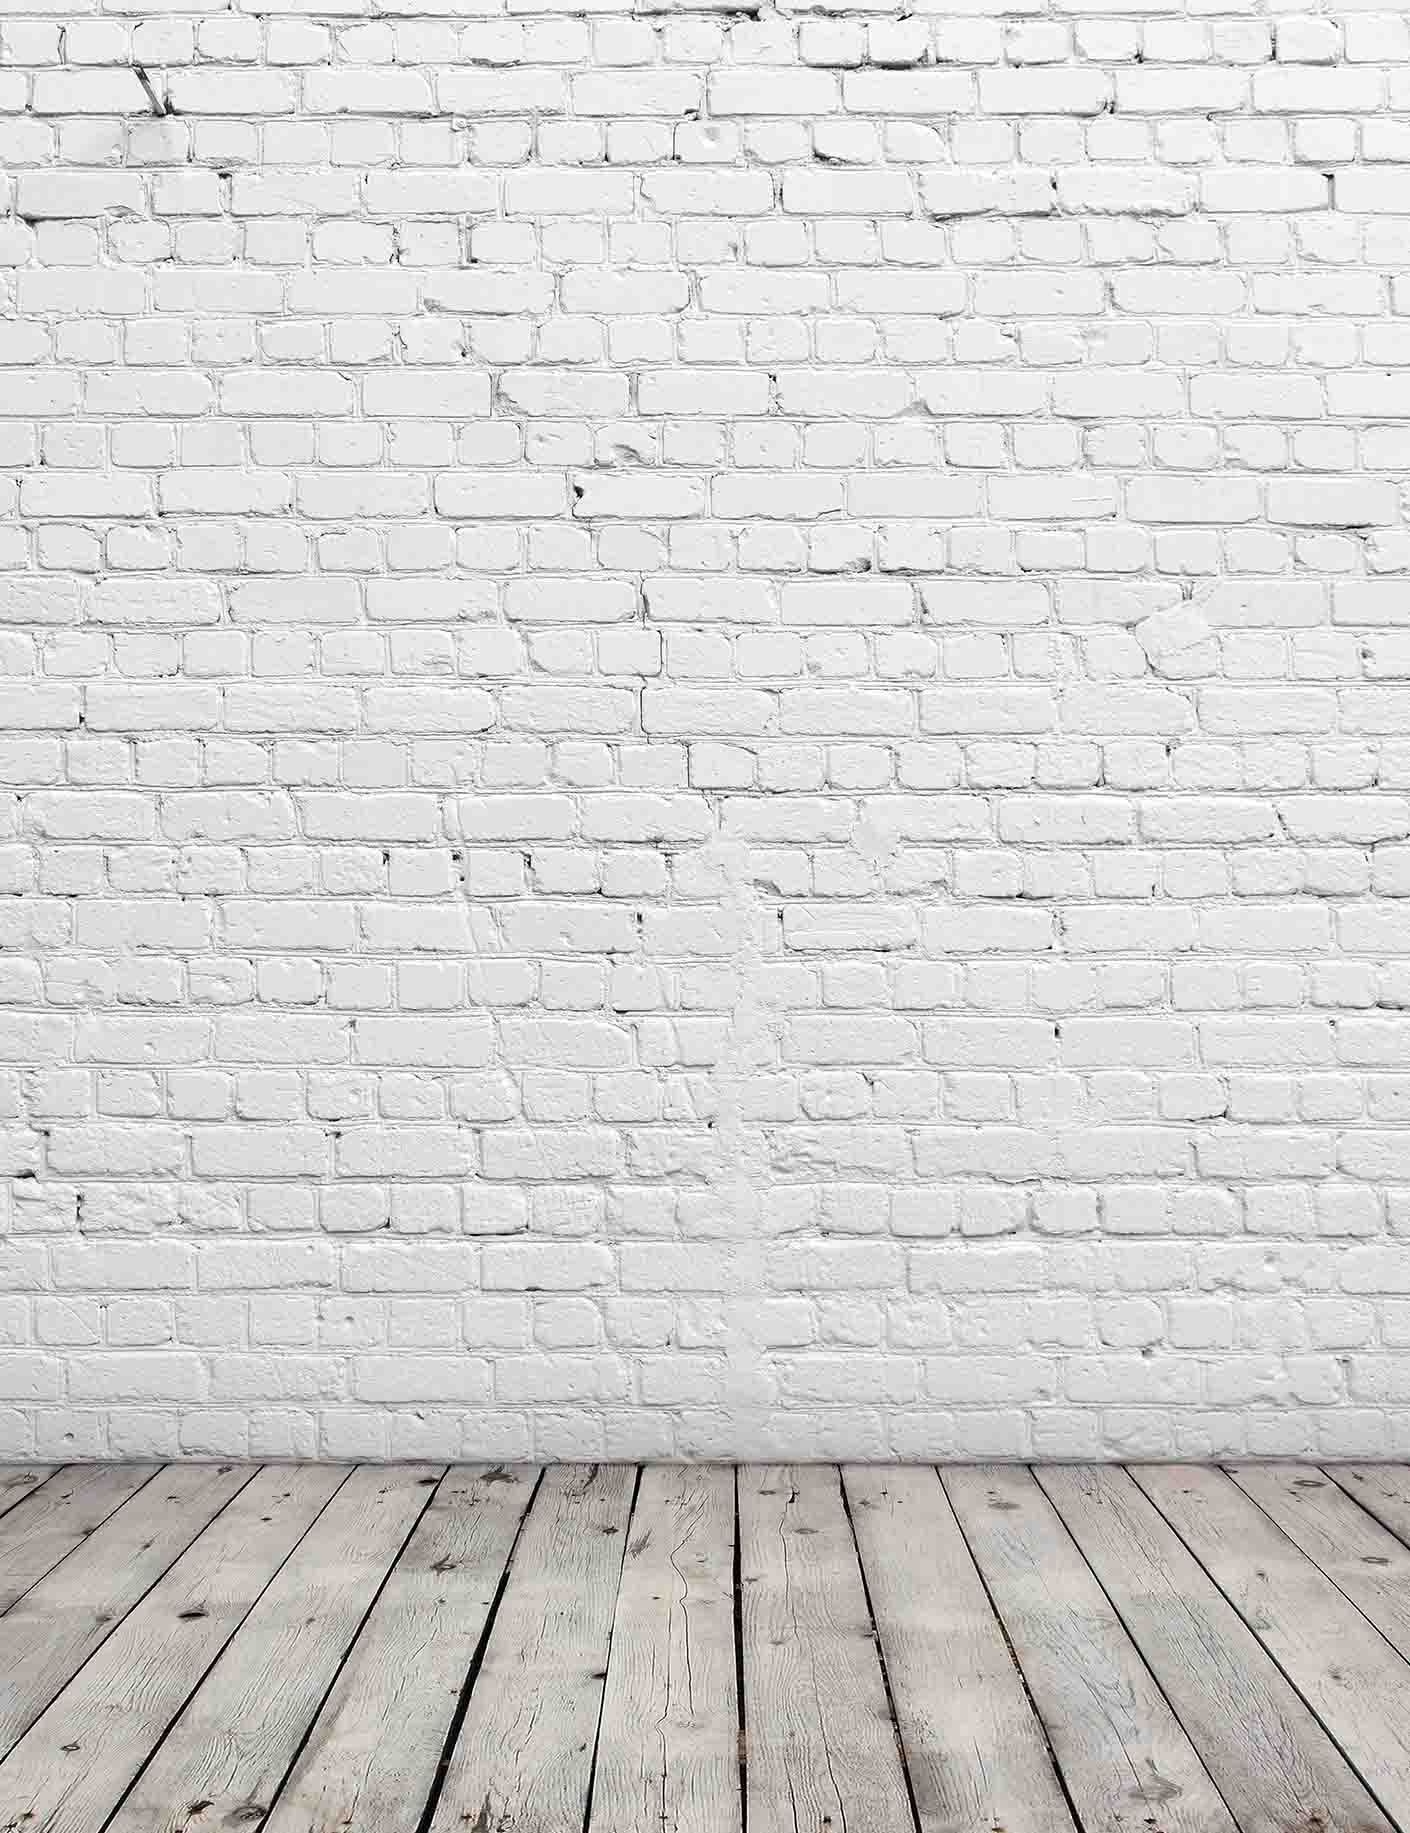 Senior White Stucco Brick Wall With Old Wood Floor Texture ...